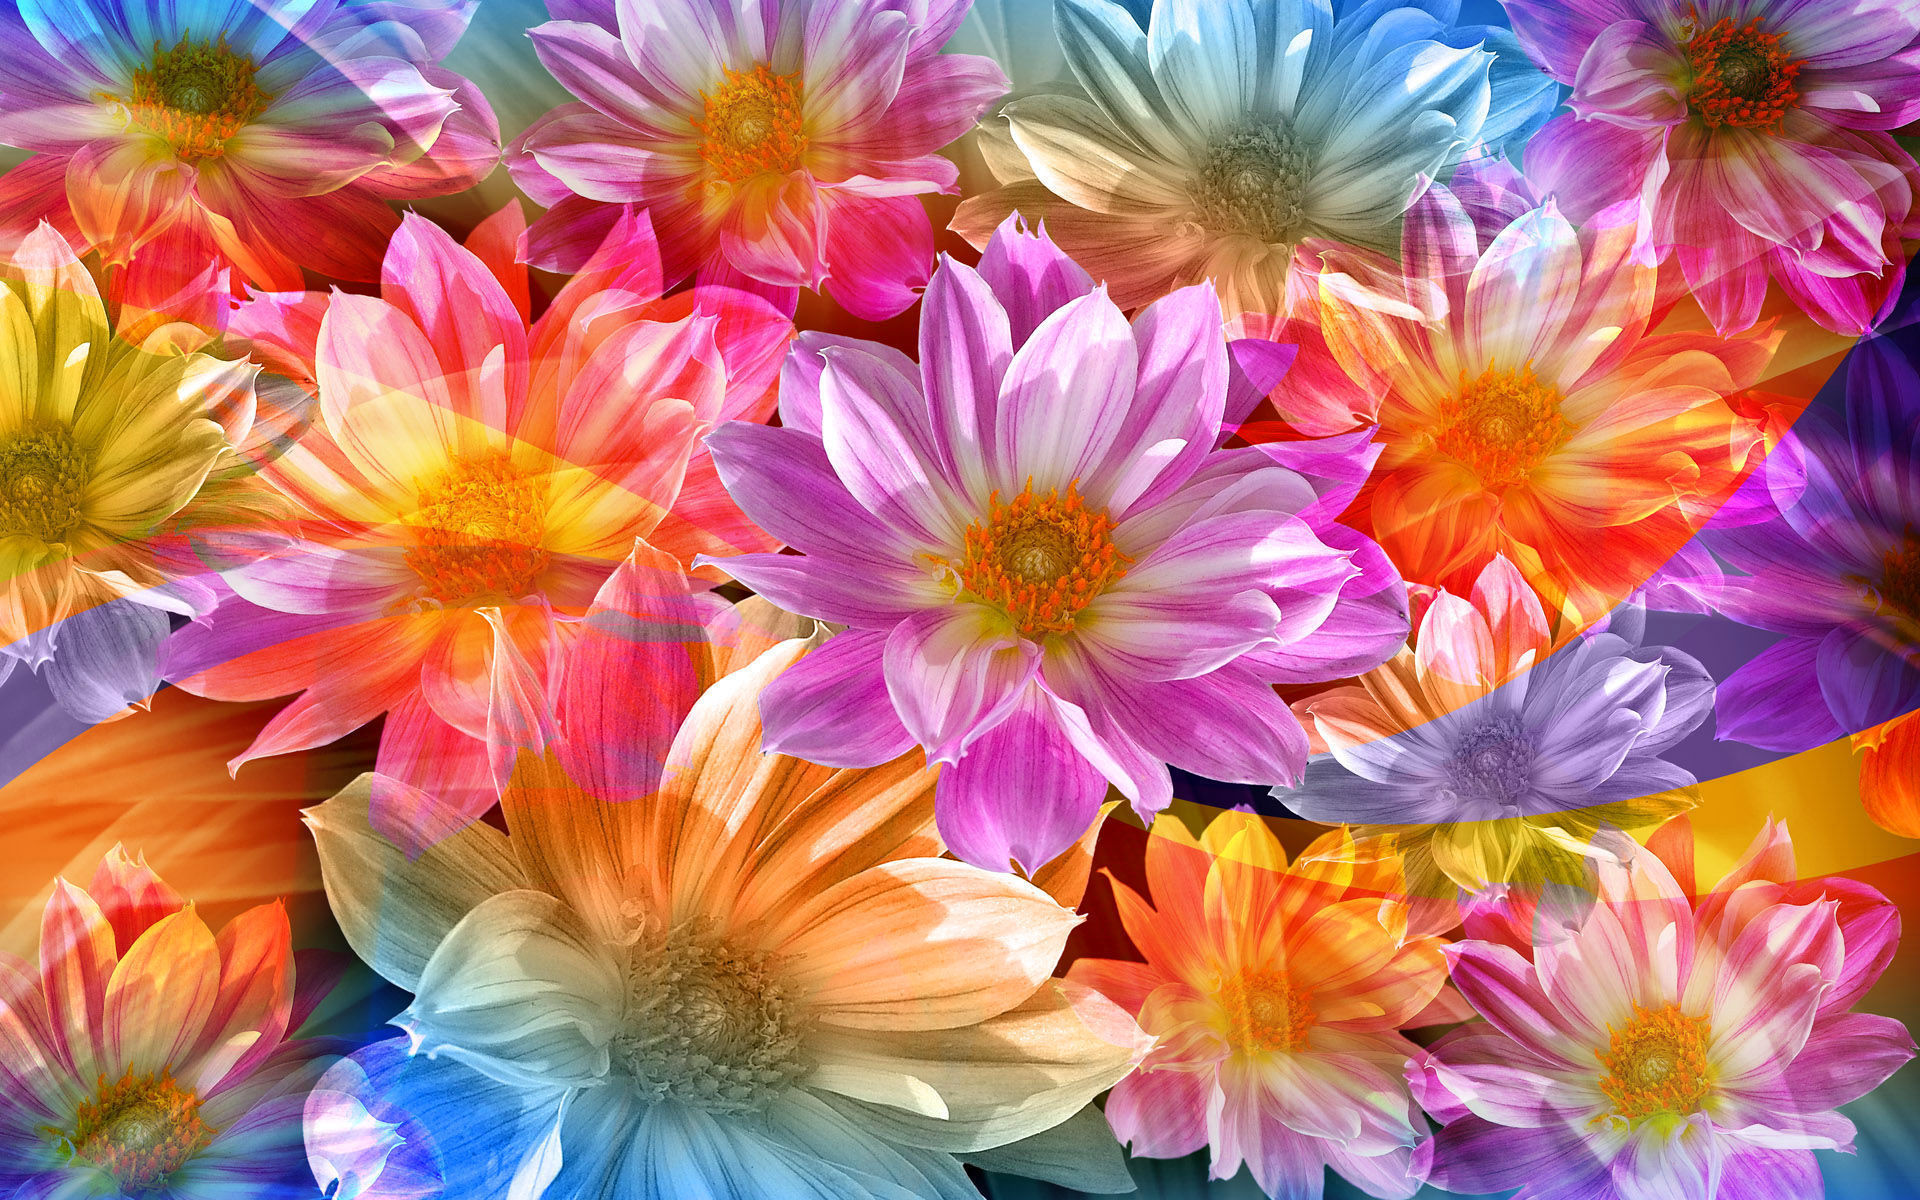 rainbow flowers wallpaper paintings - photo #11